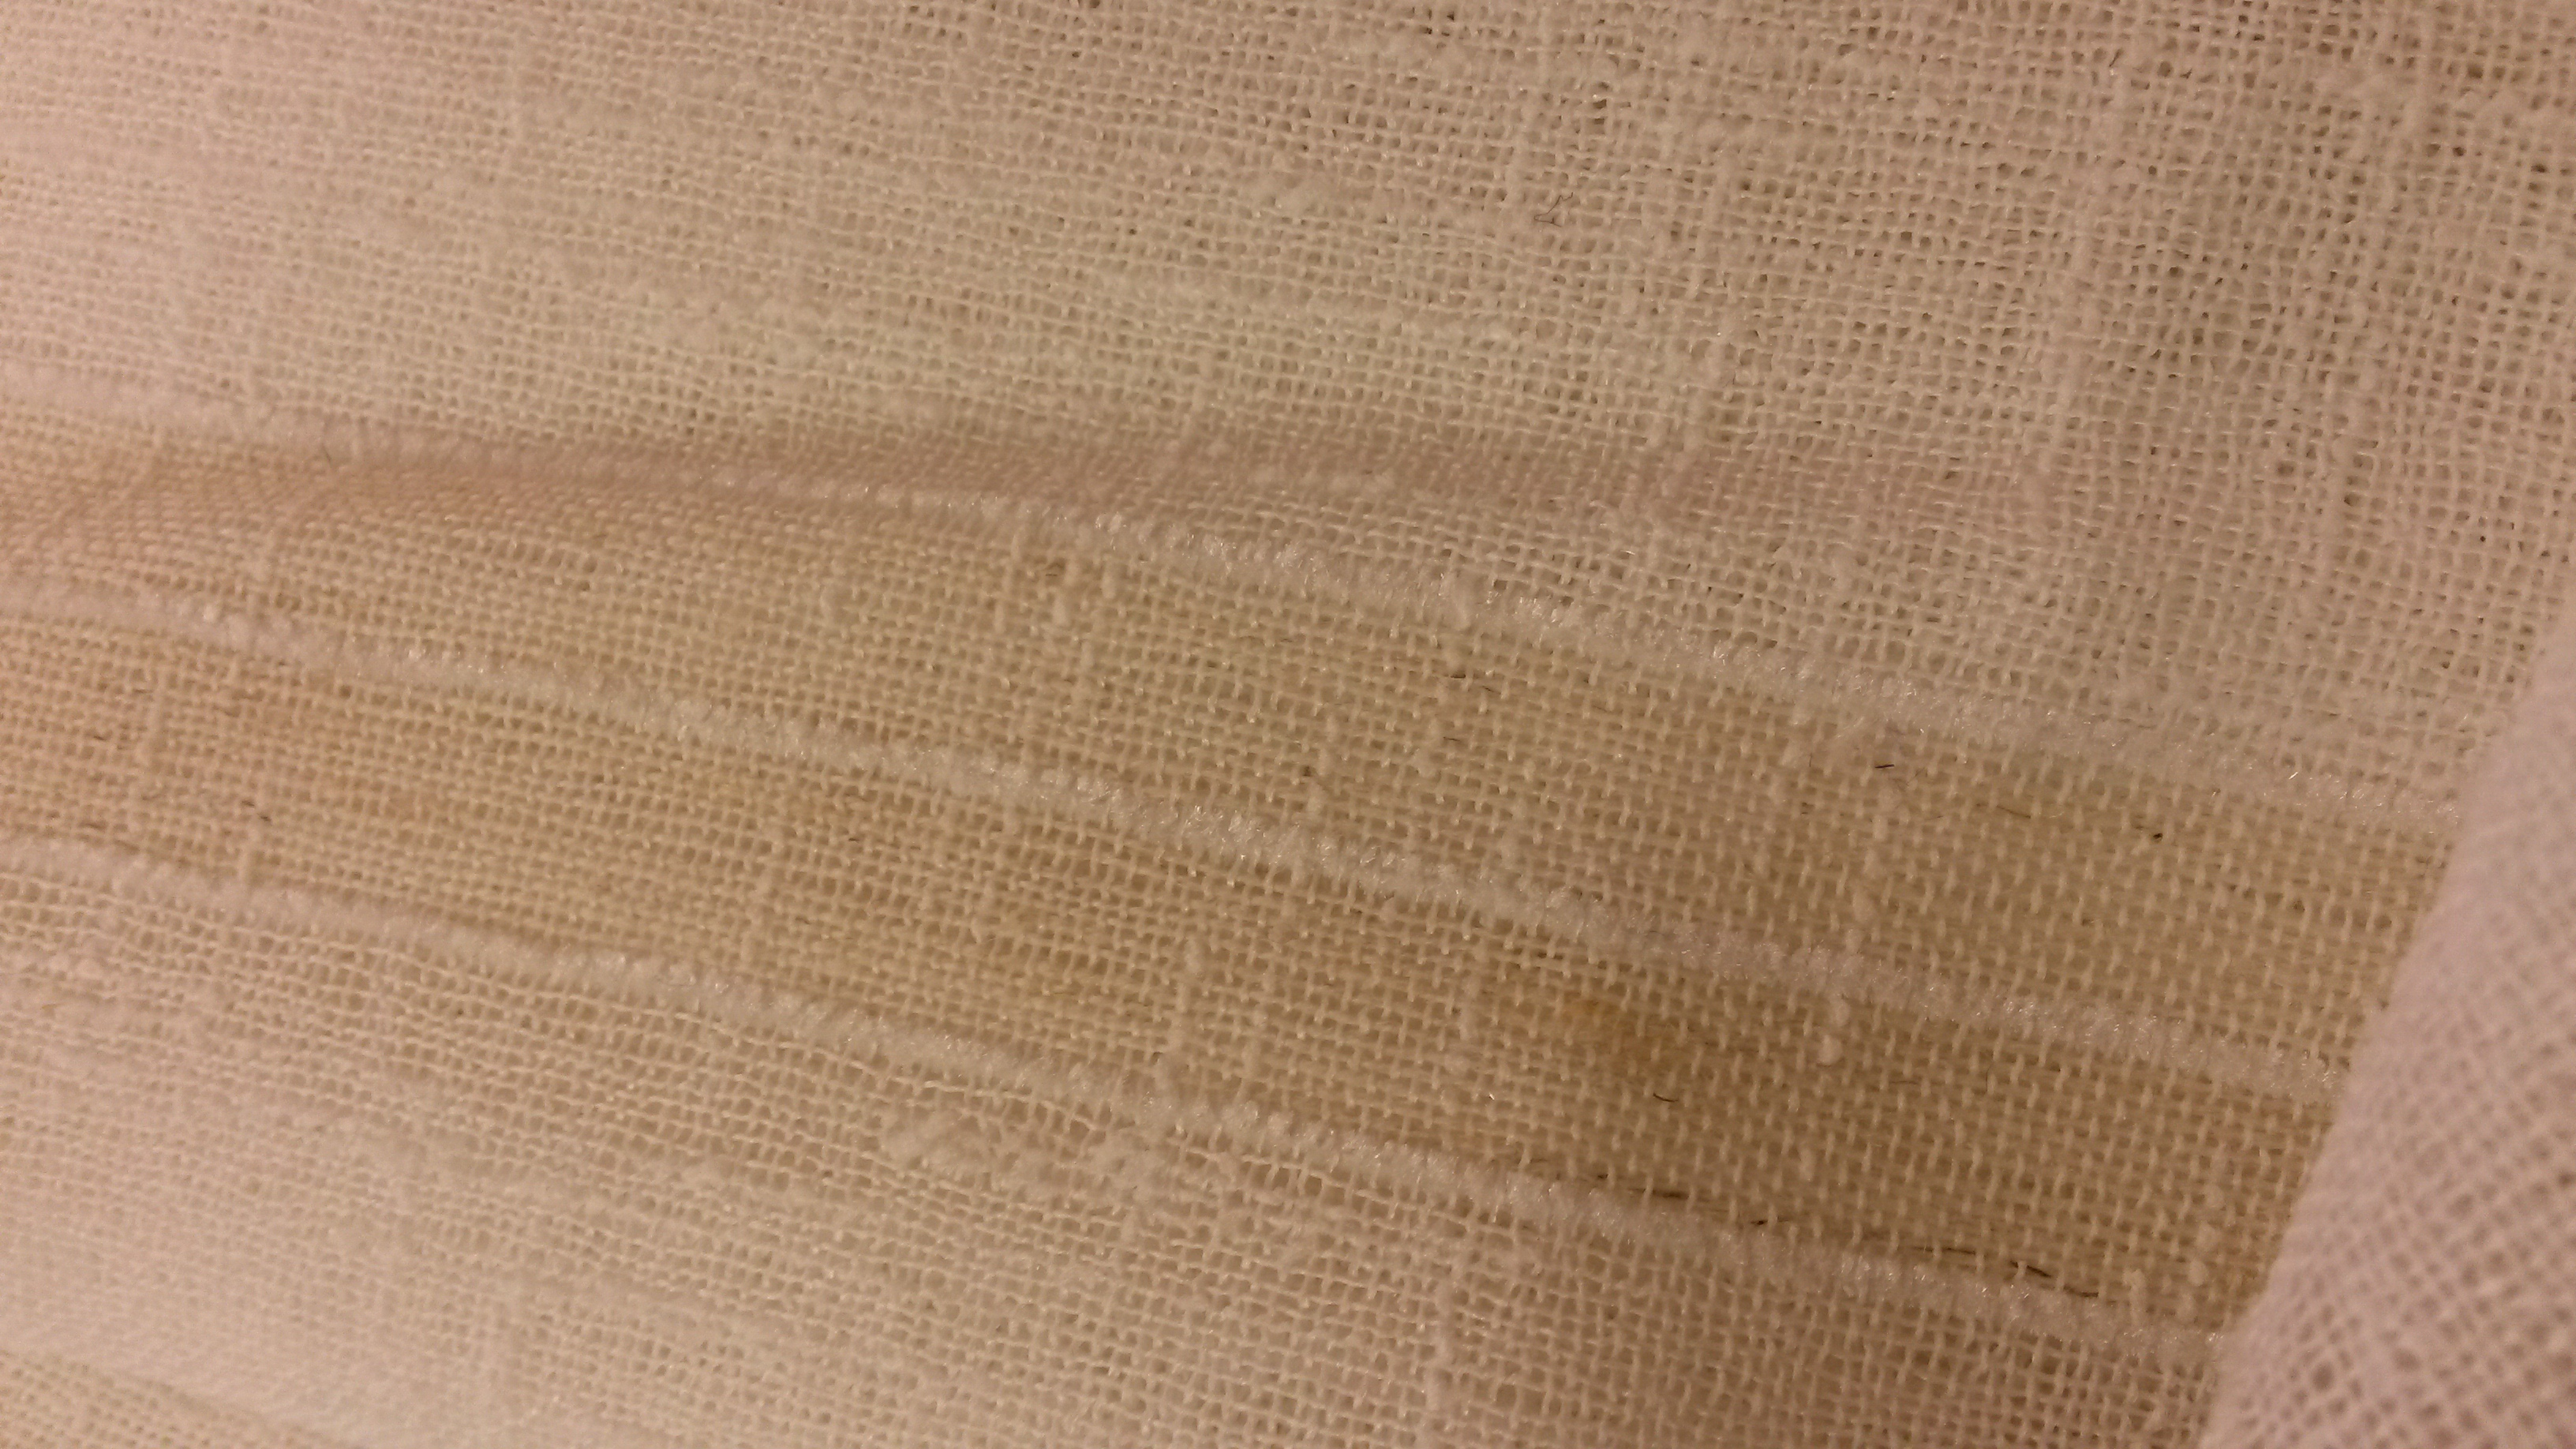 As you can see, our boucle stripe polyester and linen voile fabric (KBT3871) has slight lines of irregularity on the surface because of the curled boucle yarns which gives a subtle and appealing texture